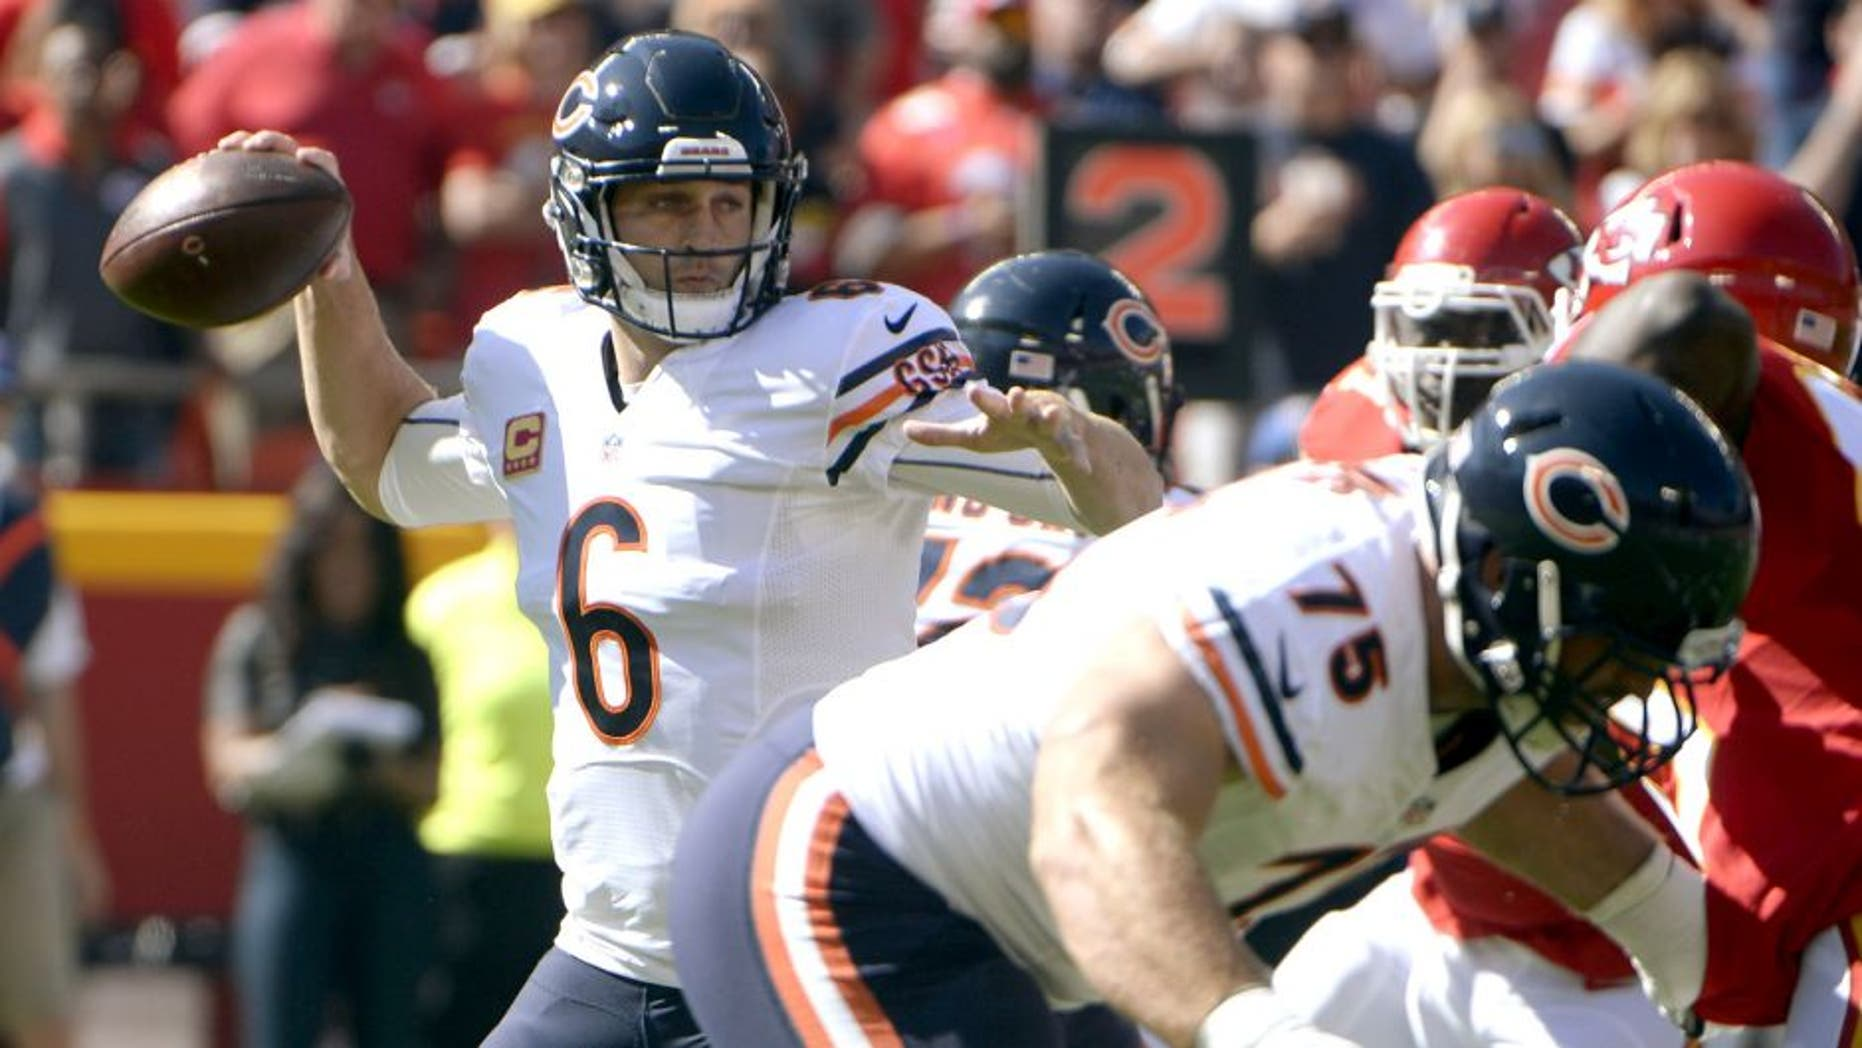 Oct 11, 2015; Kansas City, MO, USA; Chicago Bears quarterback Jay Cutler (6) throws a pass against the Kansas City Chiefs in the first half at Arrowhead Stadium. Mandatory Credit: John Rieger-USA TODAY Sports